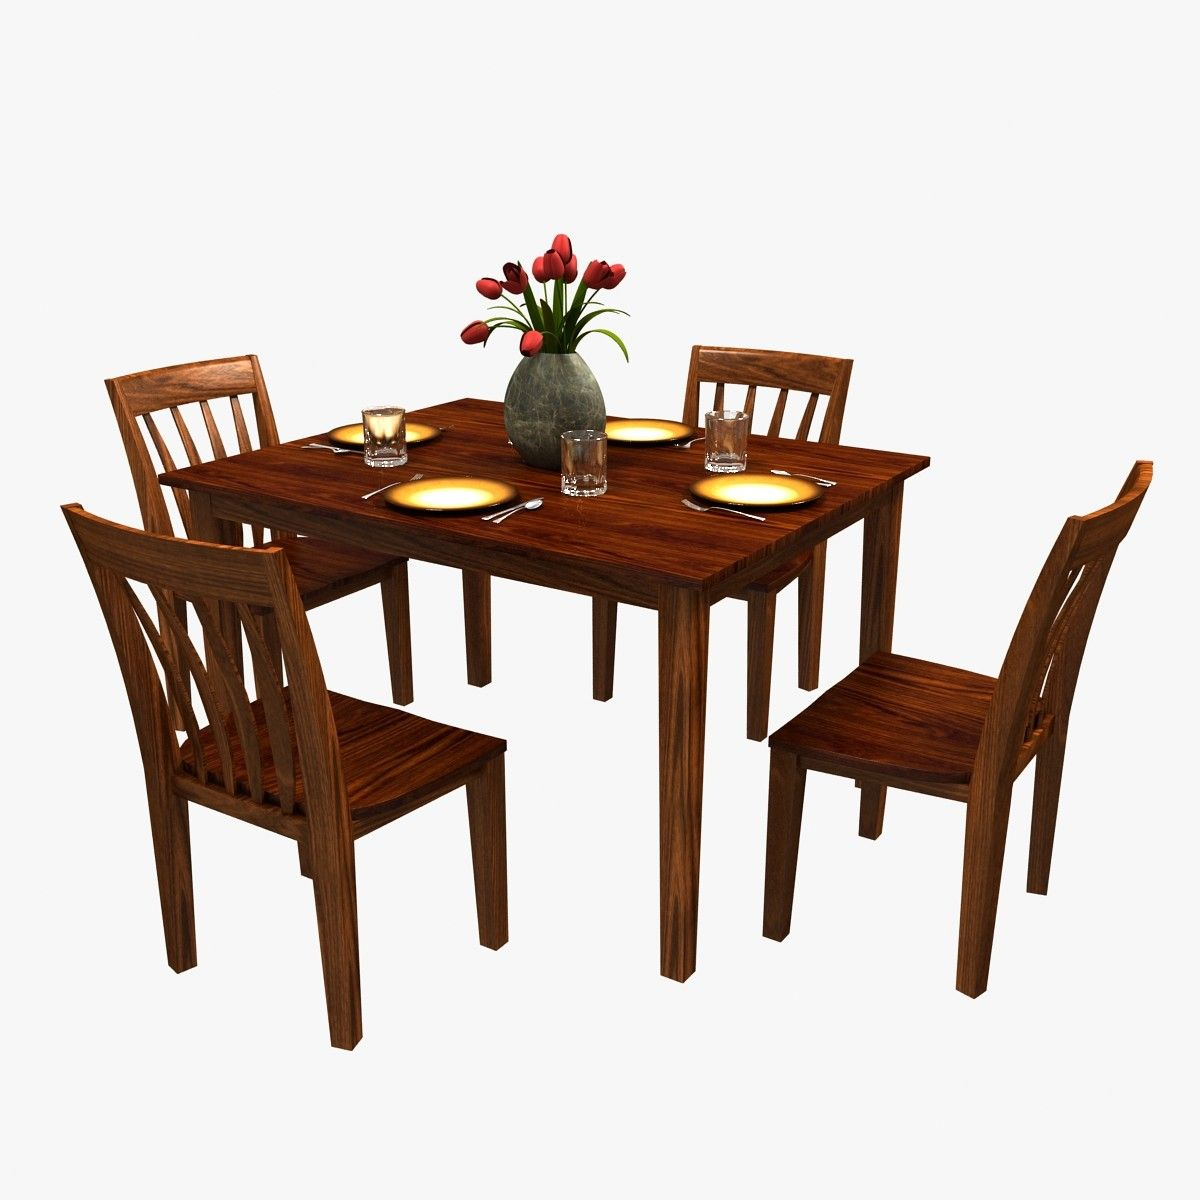 3d Traditional Dinner Table Chairs Model Dinner Table Chairs Table And Chairs Dinner Table